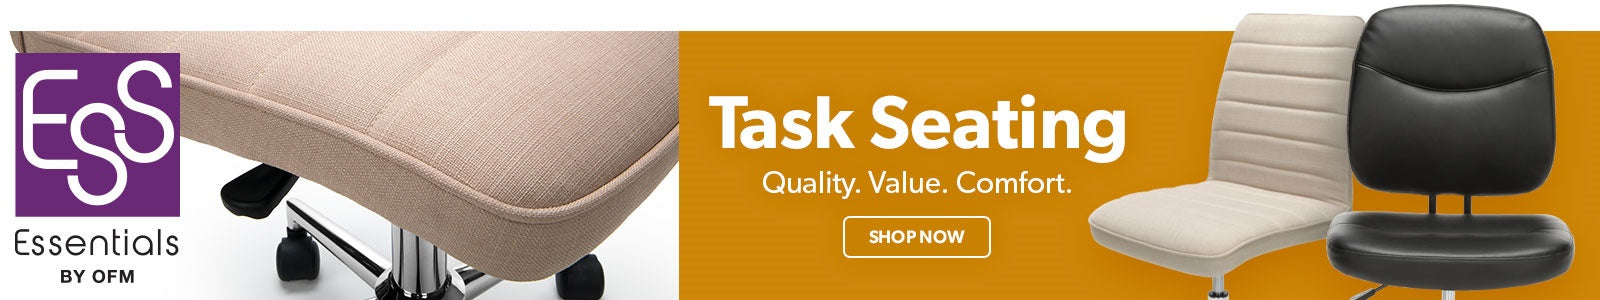 OFM Essentials Task Seating Collection Banner Image